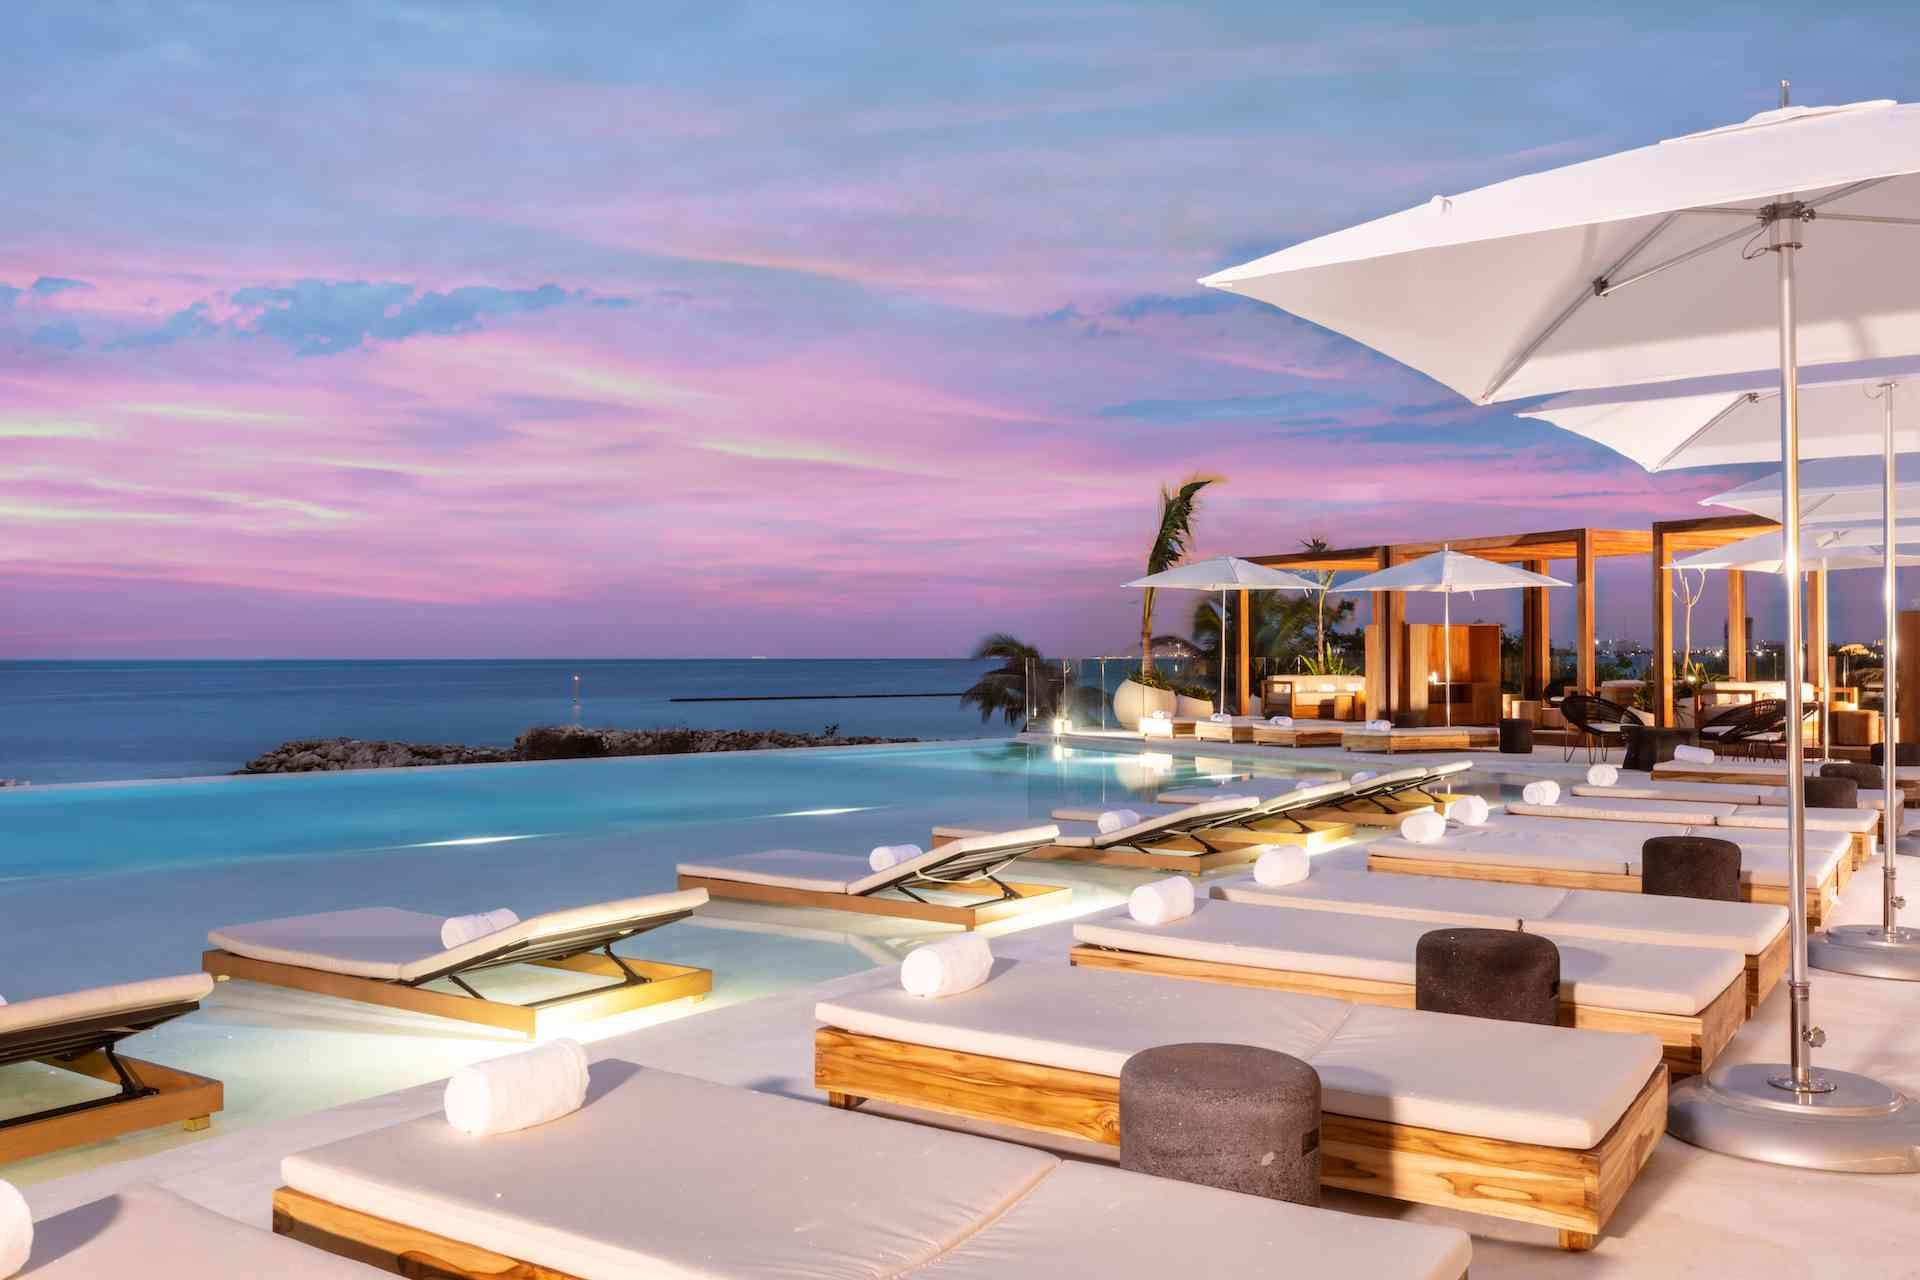 pool overlooking the ocean at dusk